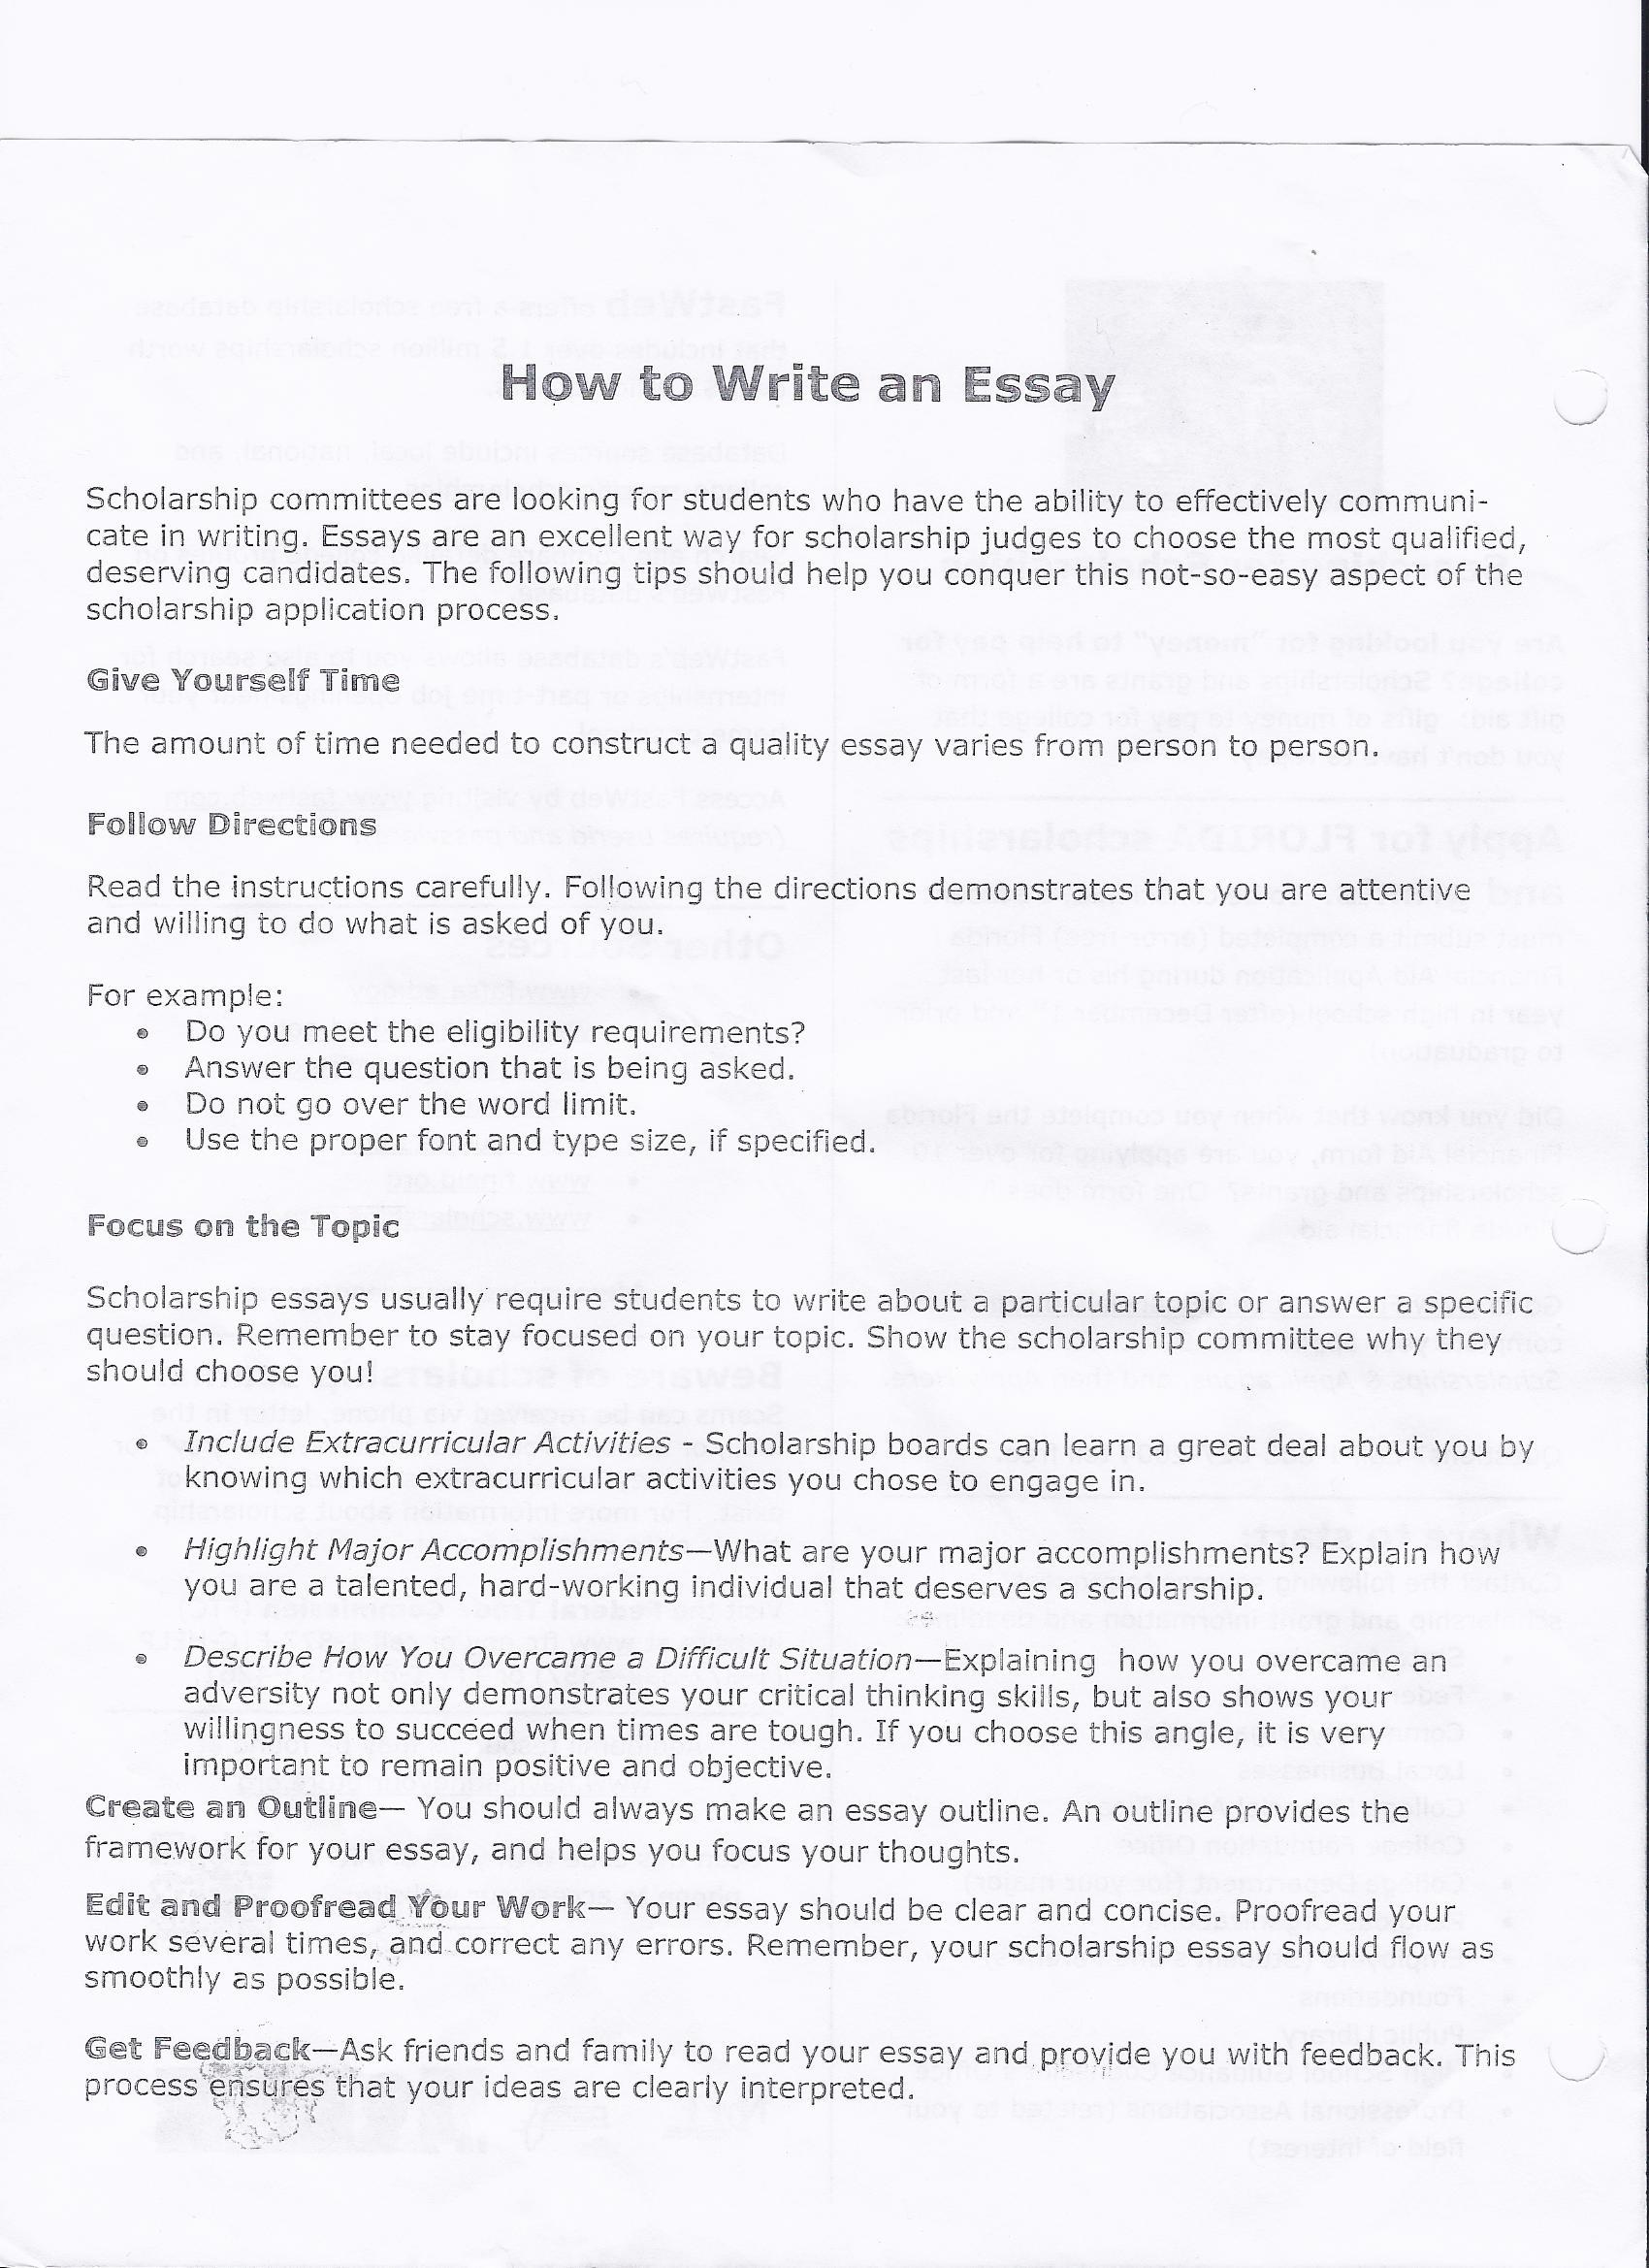 esl scholarship essay writers services gb essay on prince henry sample of biography essays diamond geo engineering services